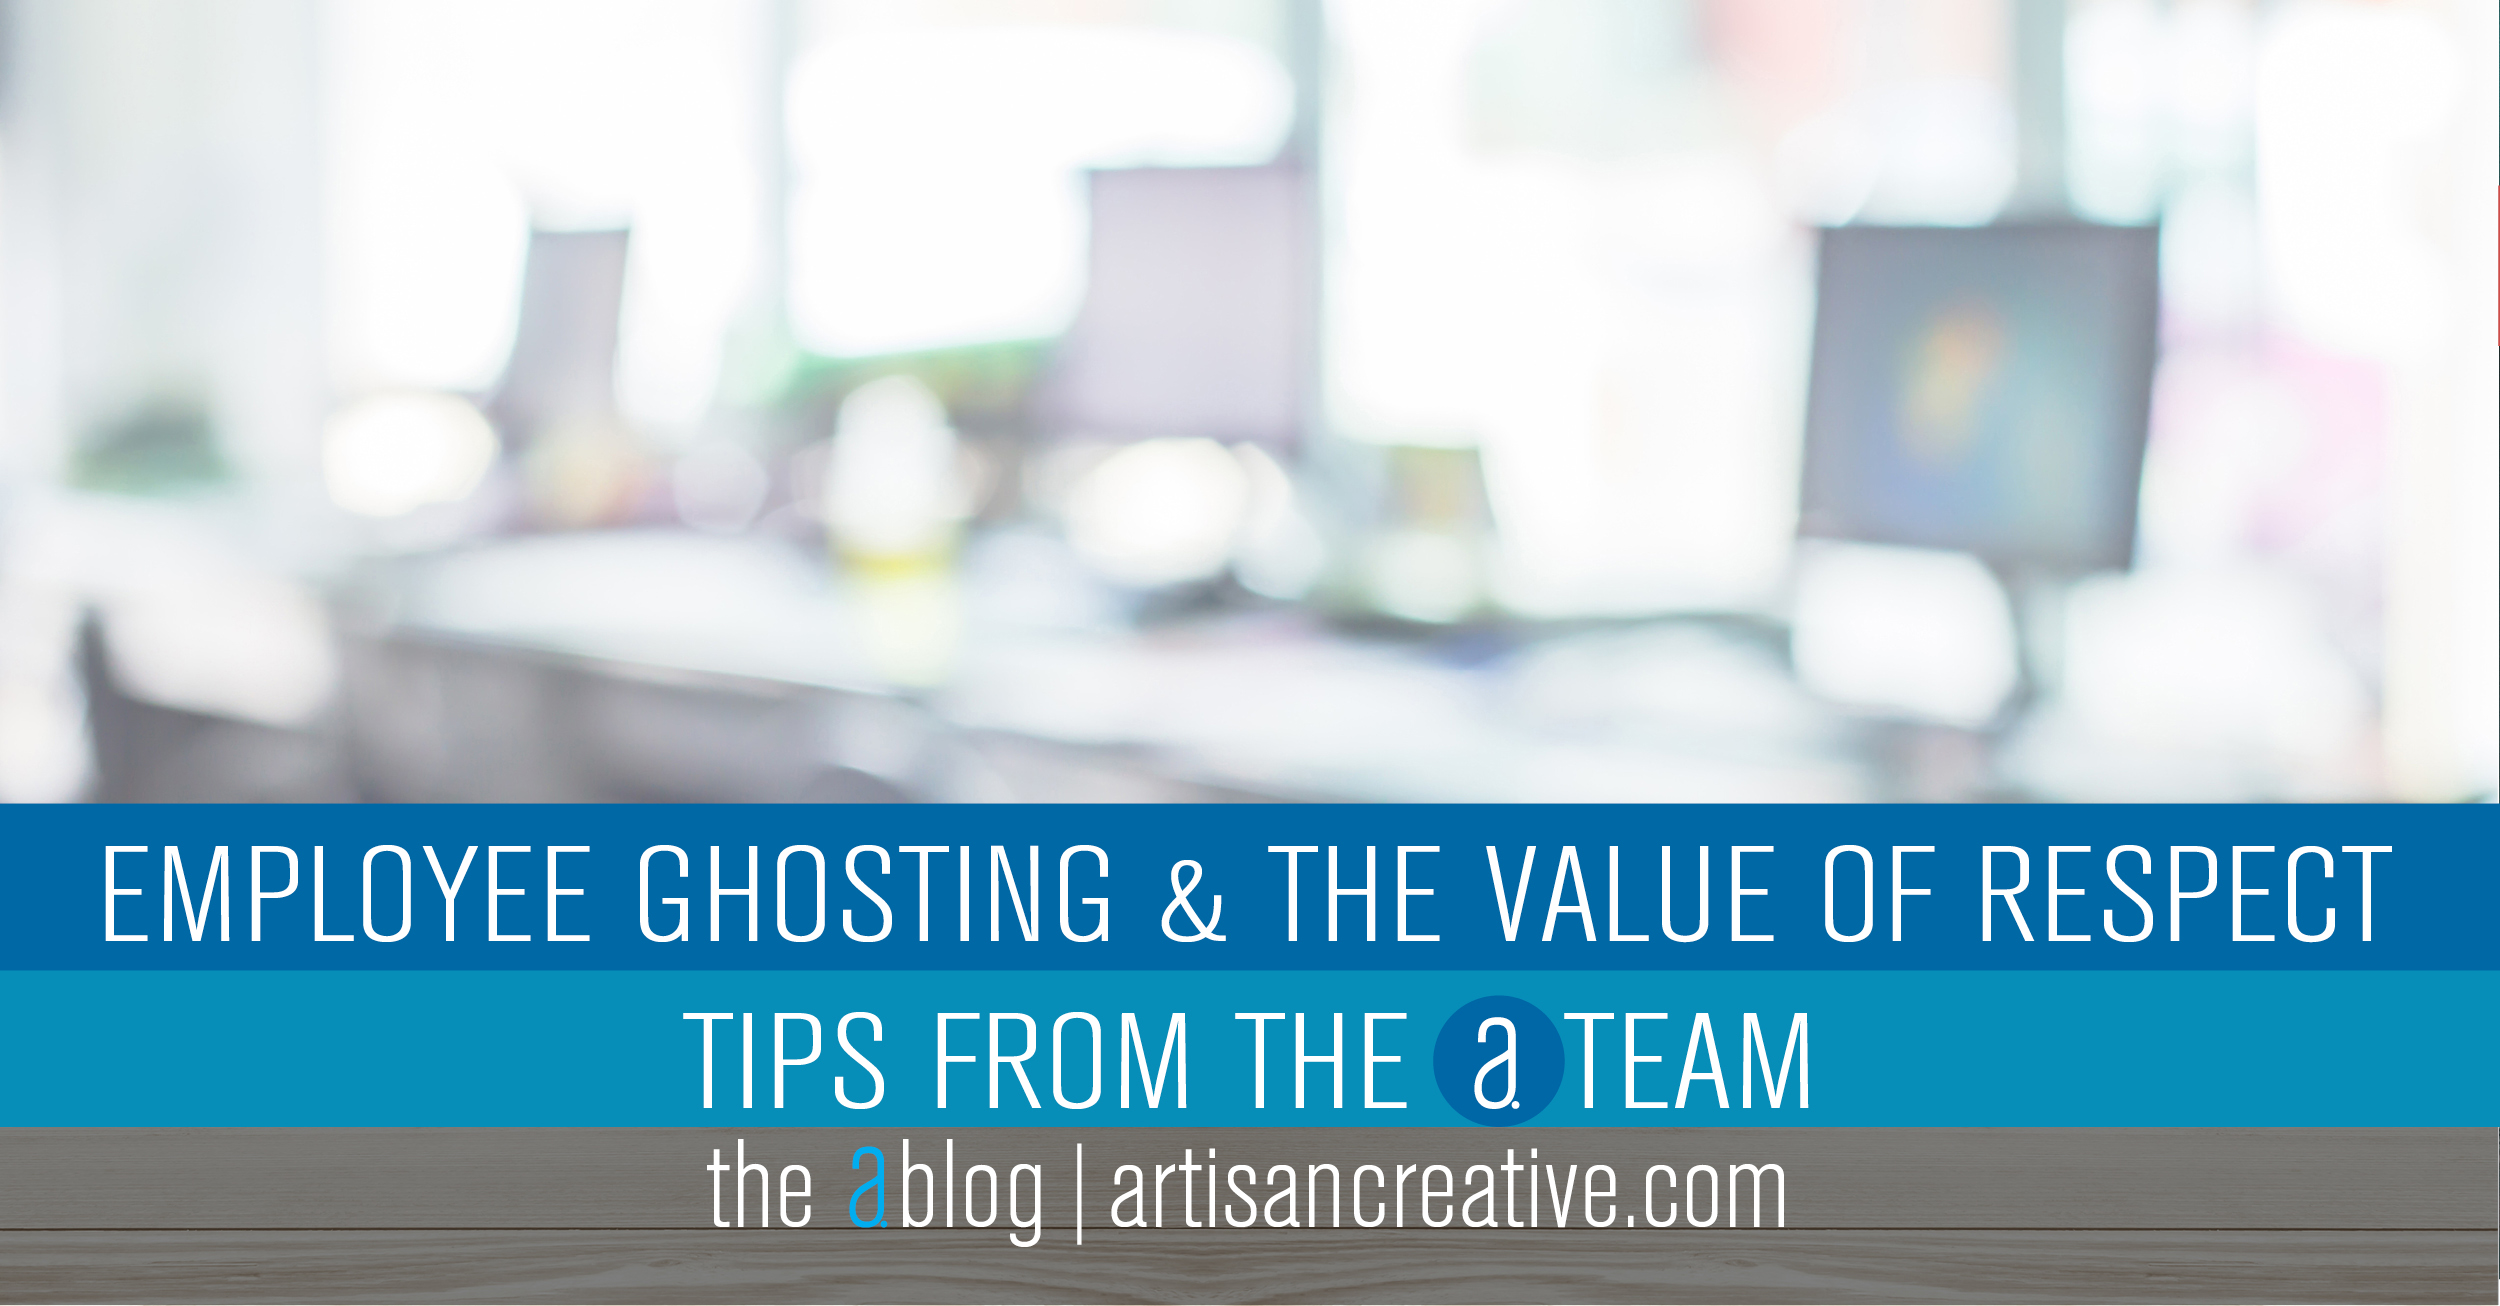 Employee Ghosting and the Value of Respect